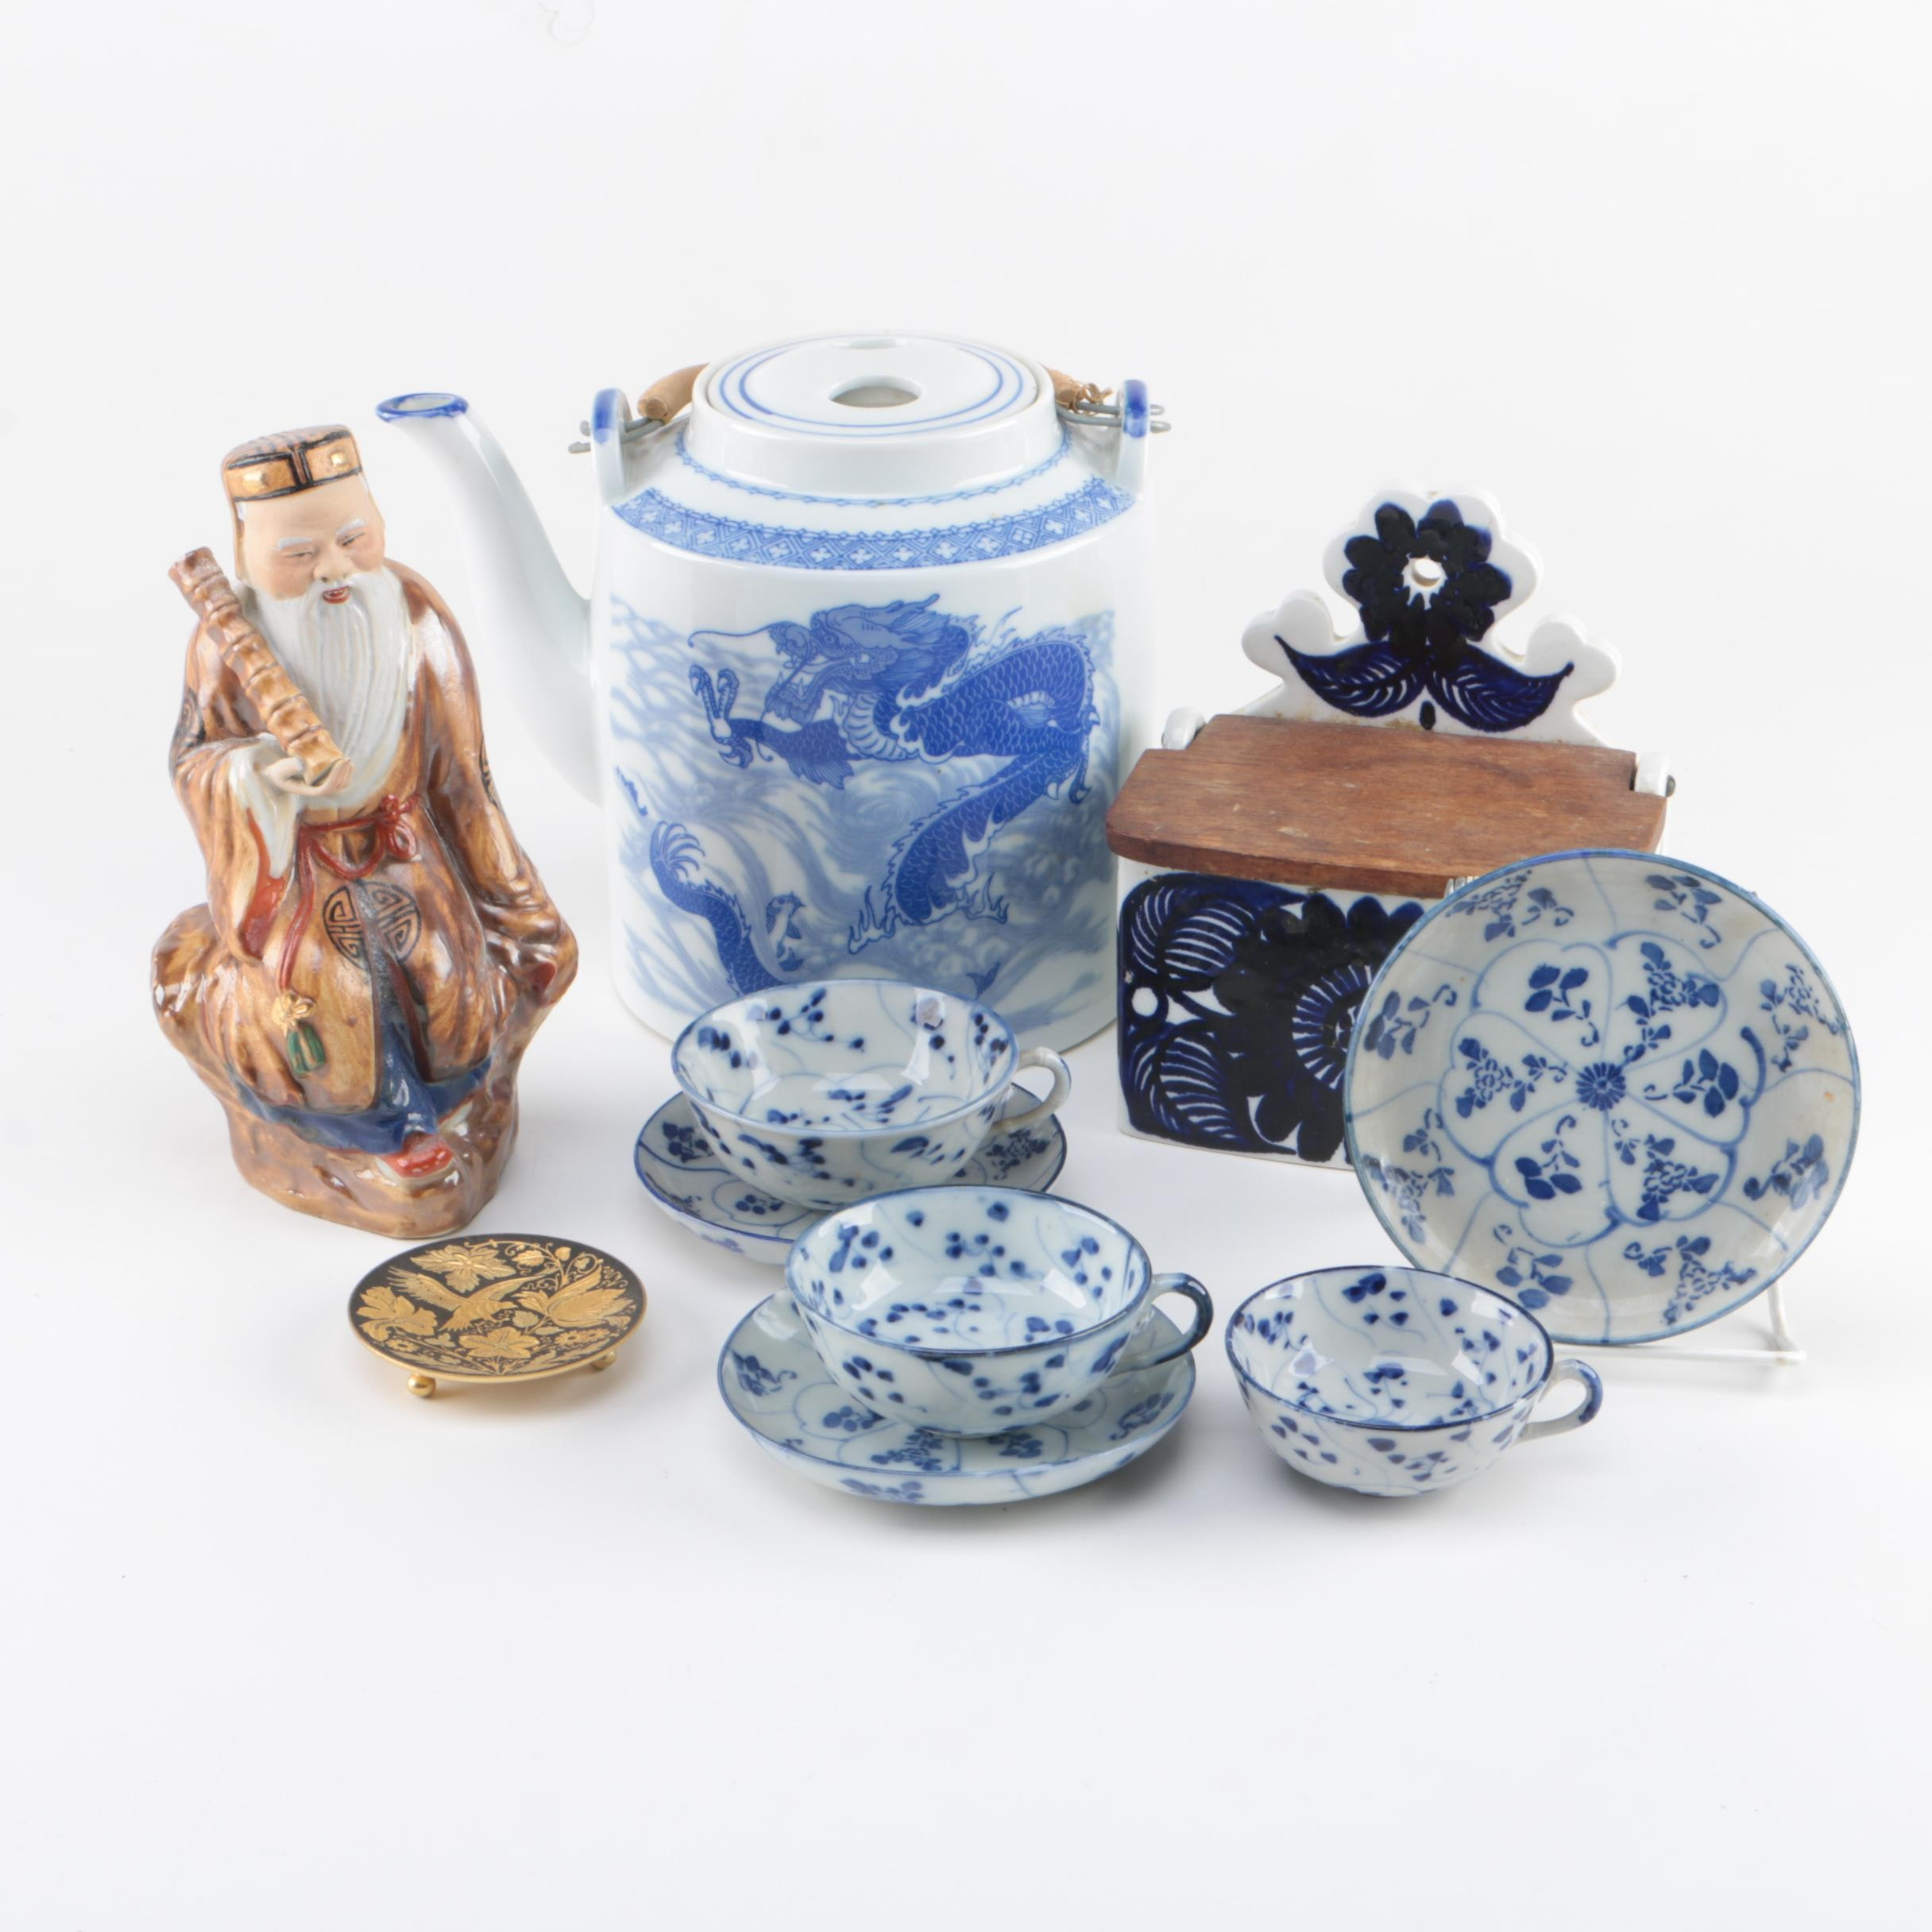 East Asian Tableware and Decor